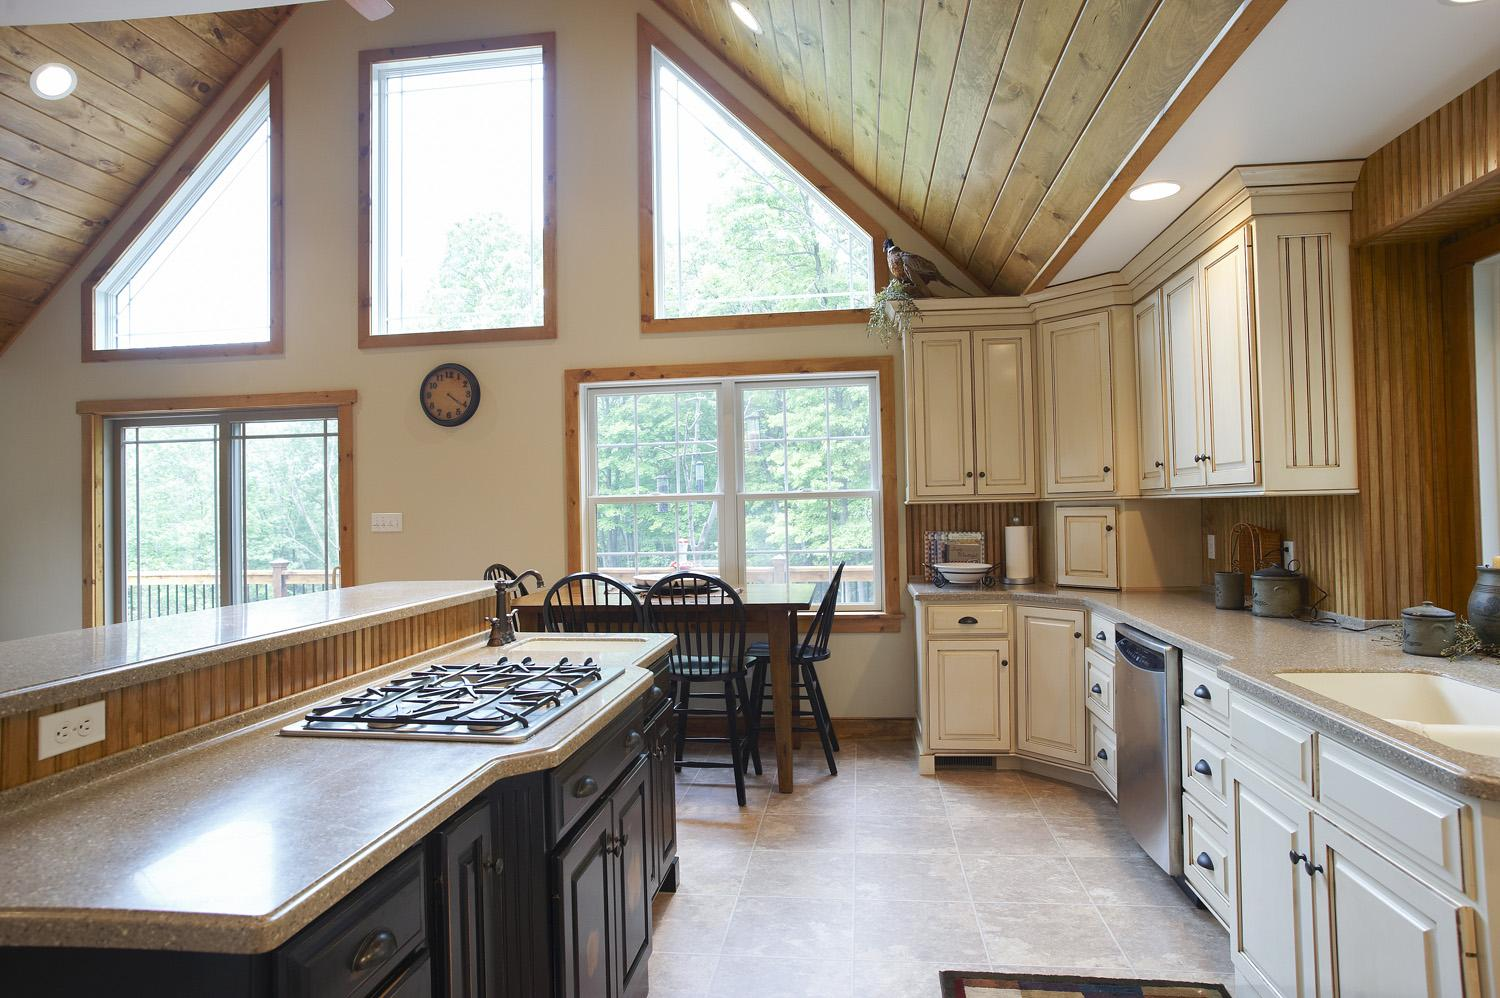 Country kitchen cabinets and island